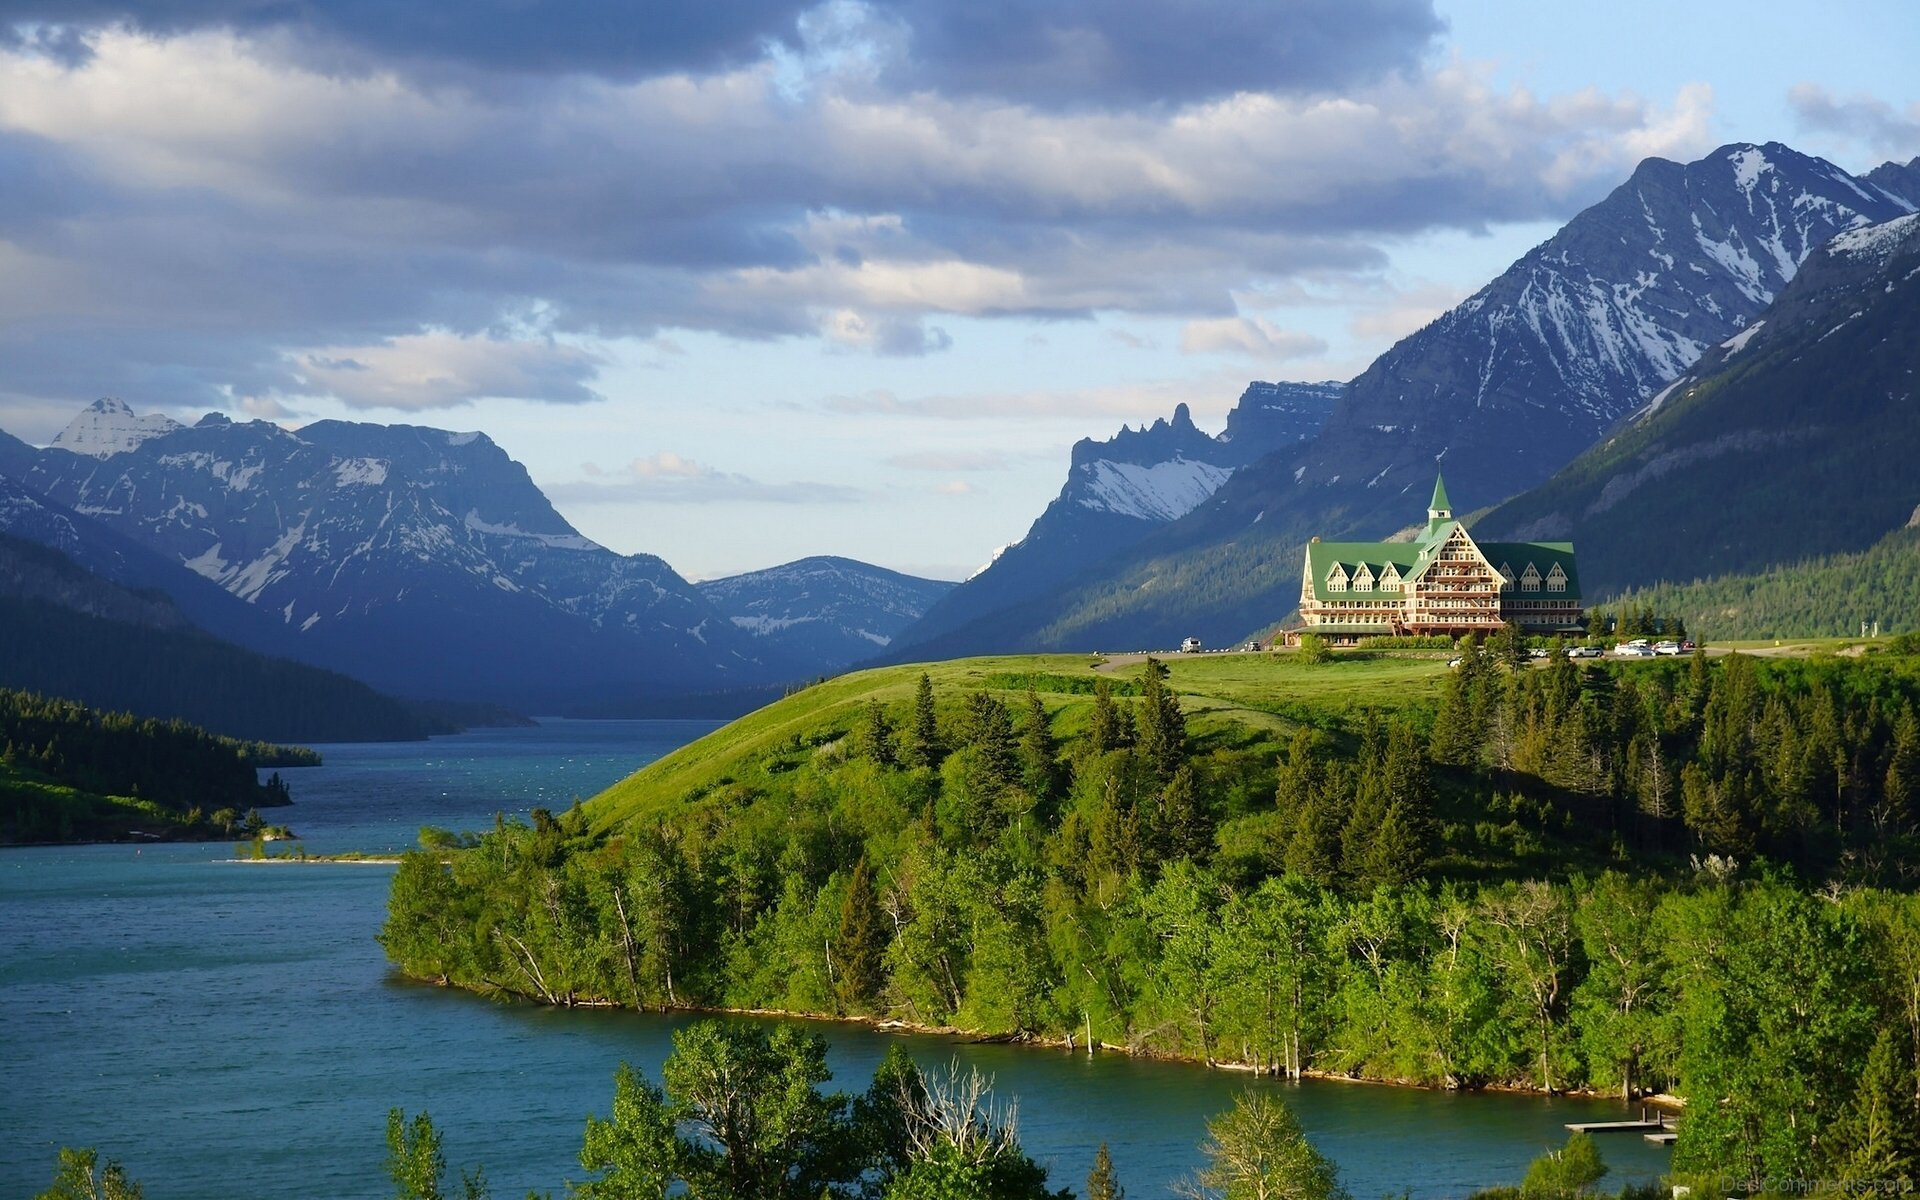 Prince Of Wales Hotel Waterton Lake Lakes National Park Alberta Canada